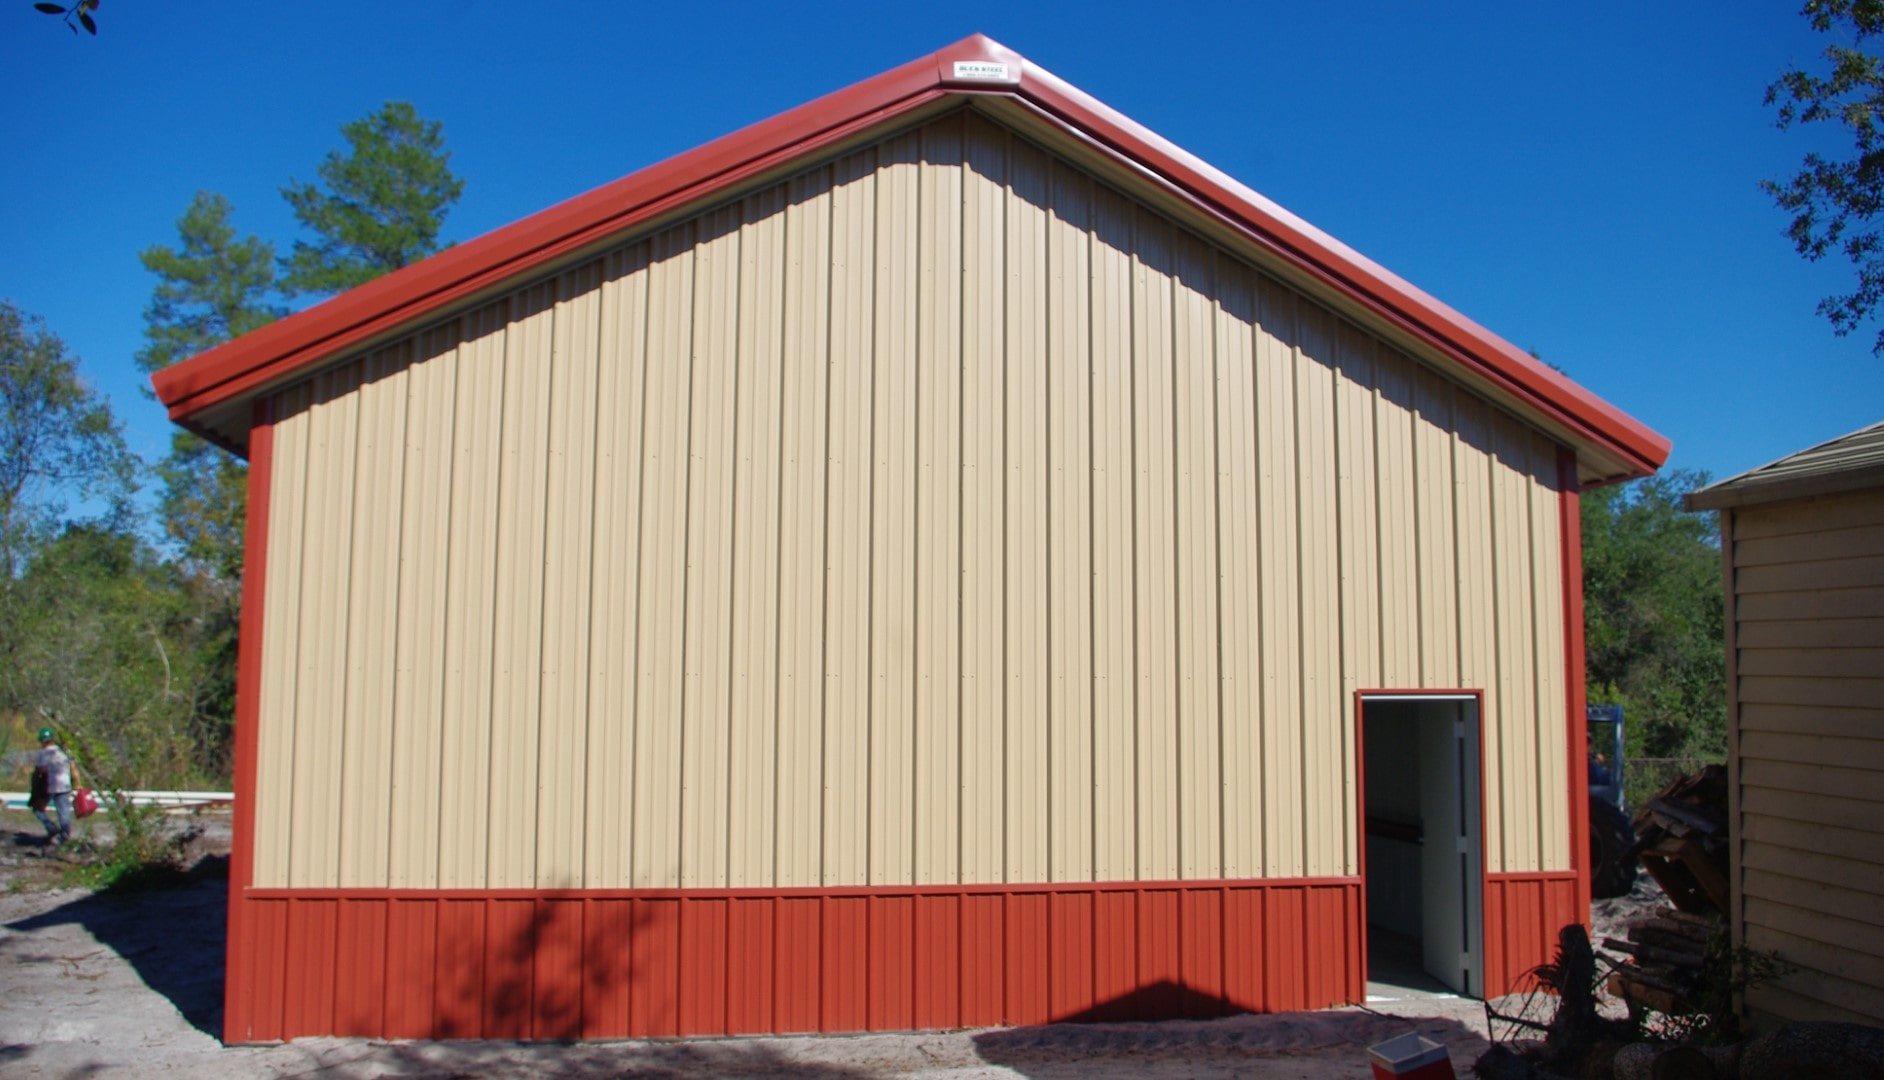 Tan metal building kit with red trim, red wainscoting, and roof extensions with soffit.